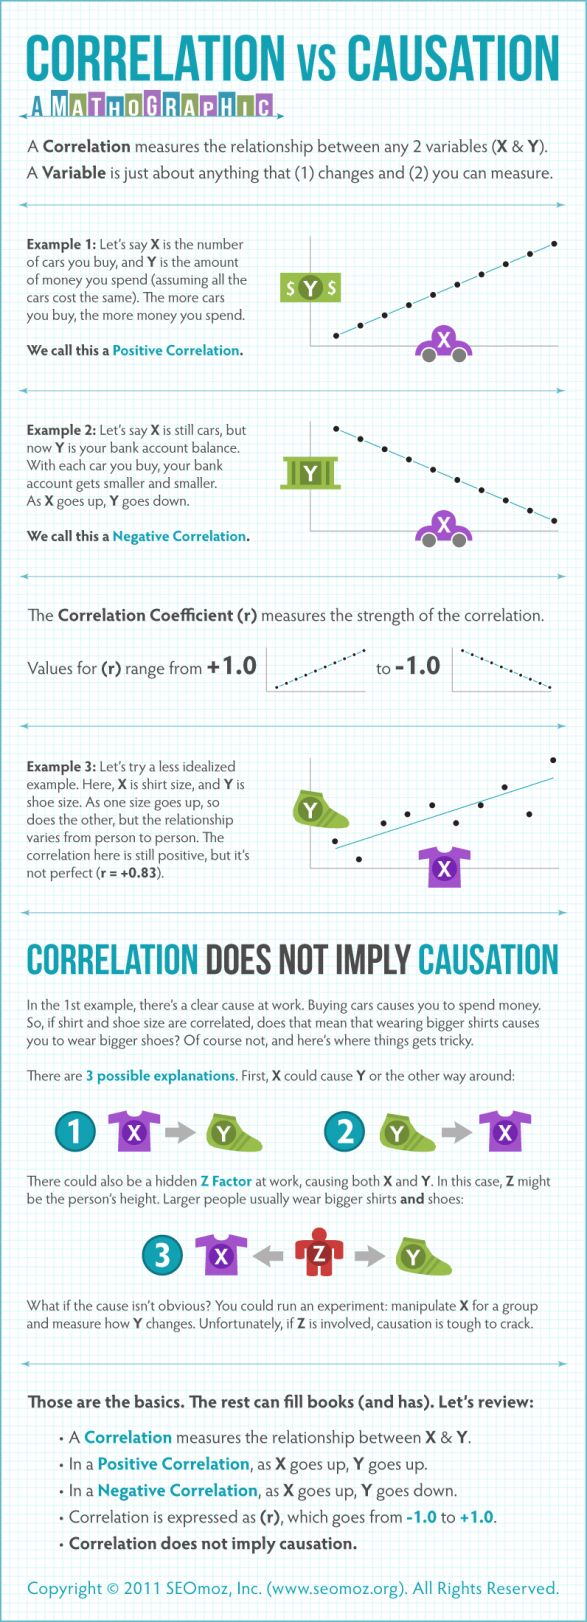 ideas about statistics help statistics correlation measures the relationship two variables and this chart helps you understand what kind of correlation it is negative or positive and the